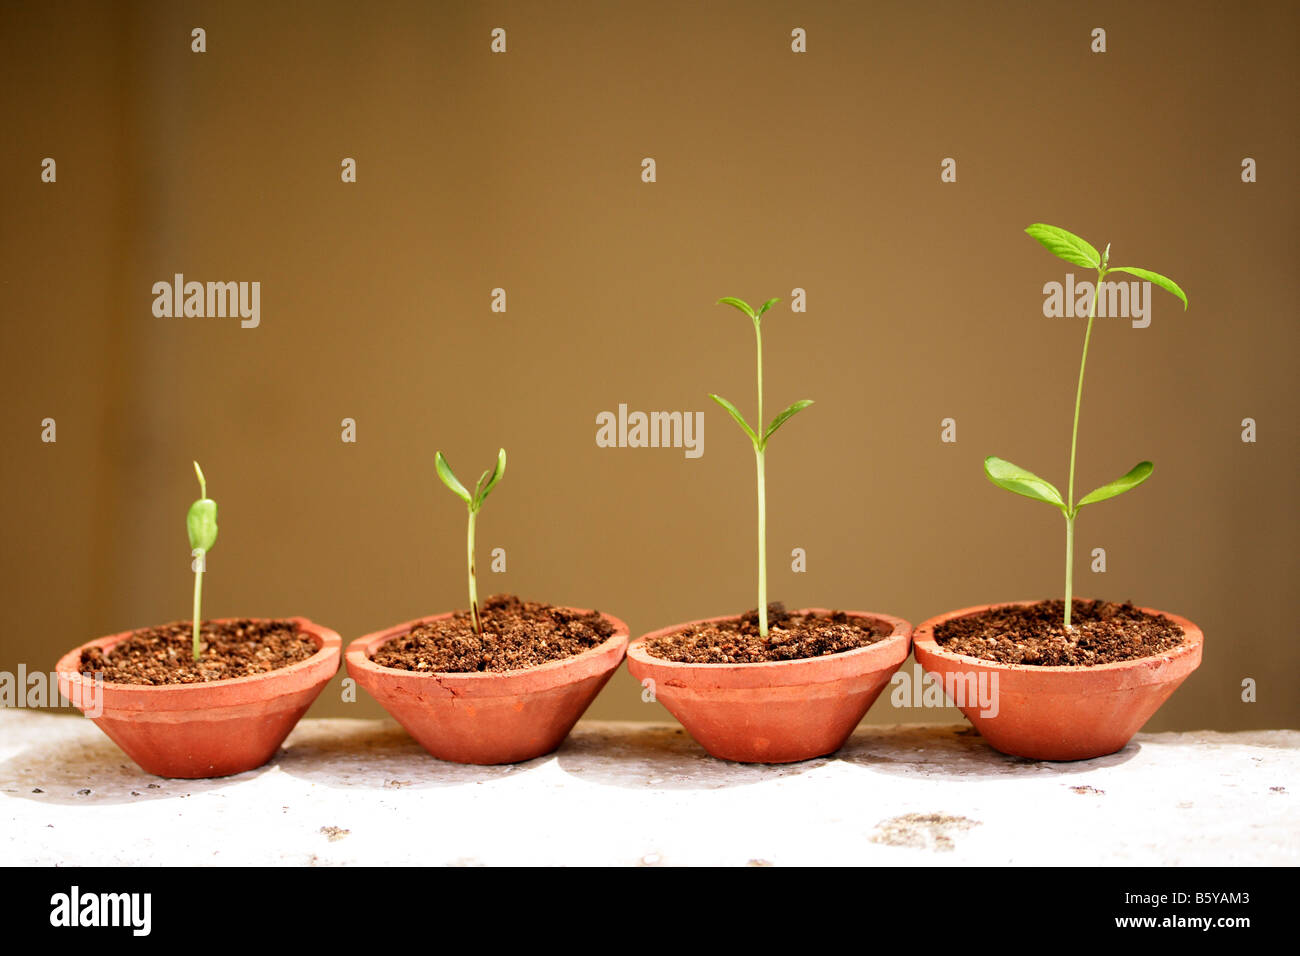 Progression of seedling growth. - Stock Image